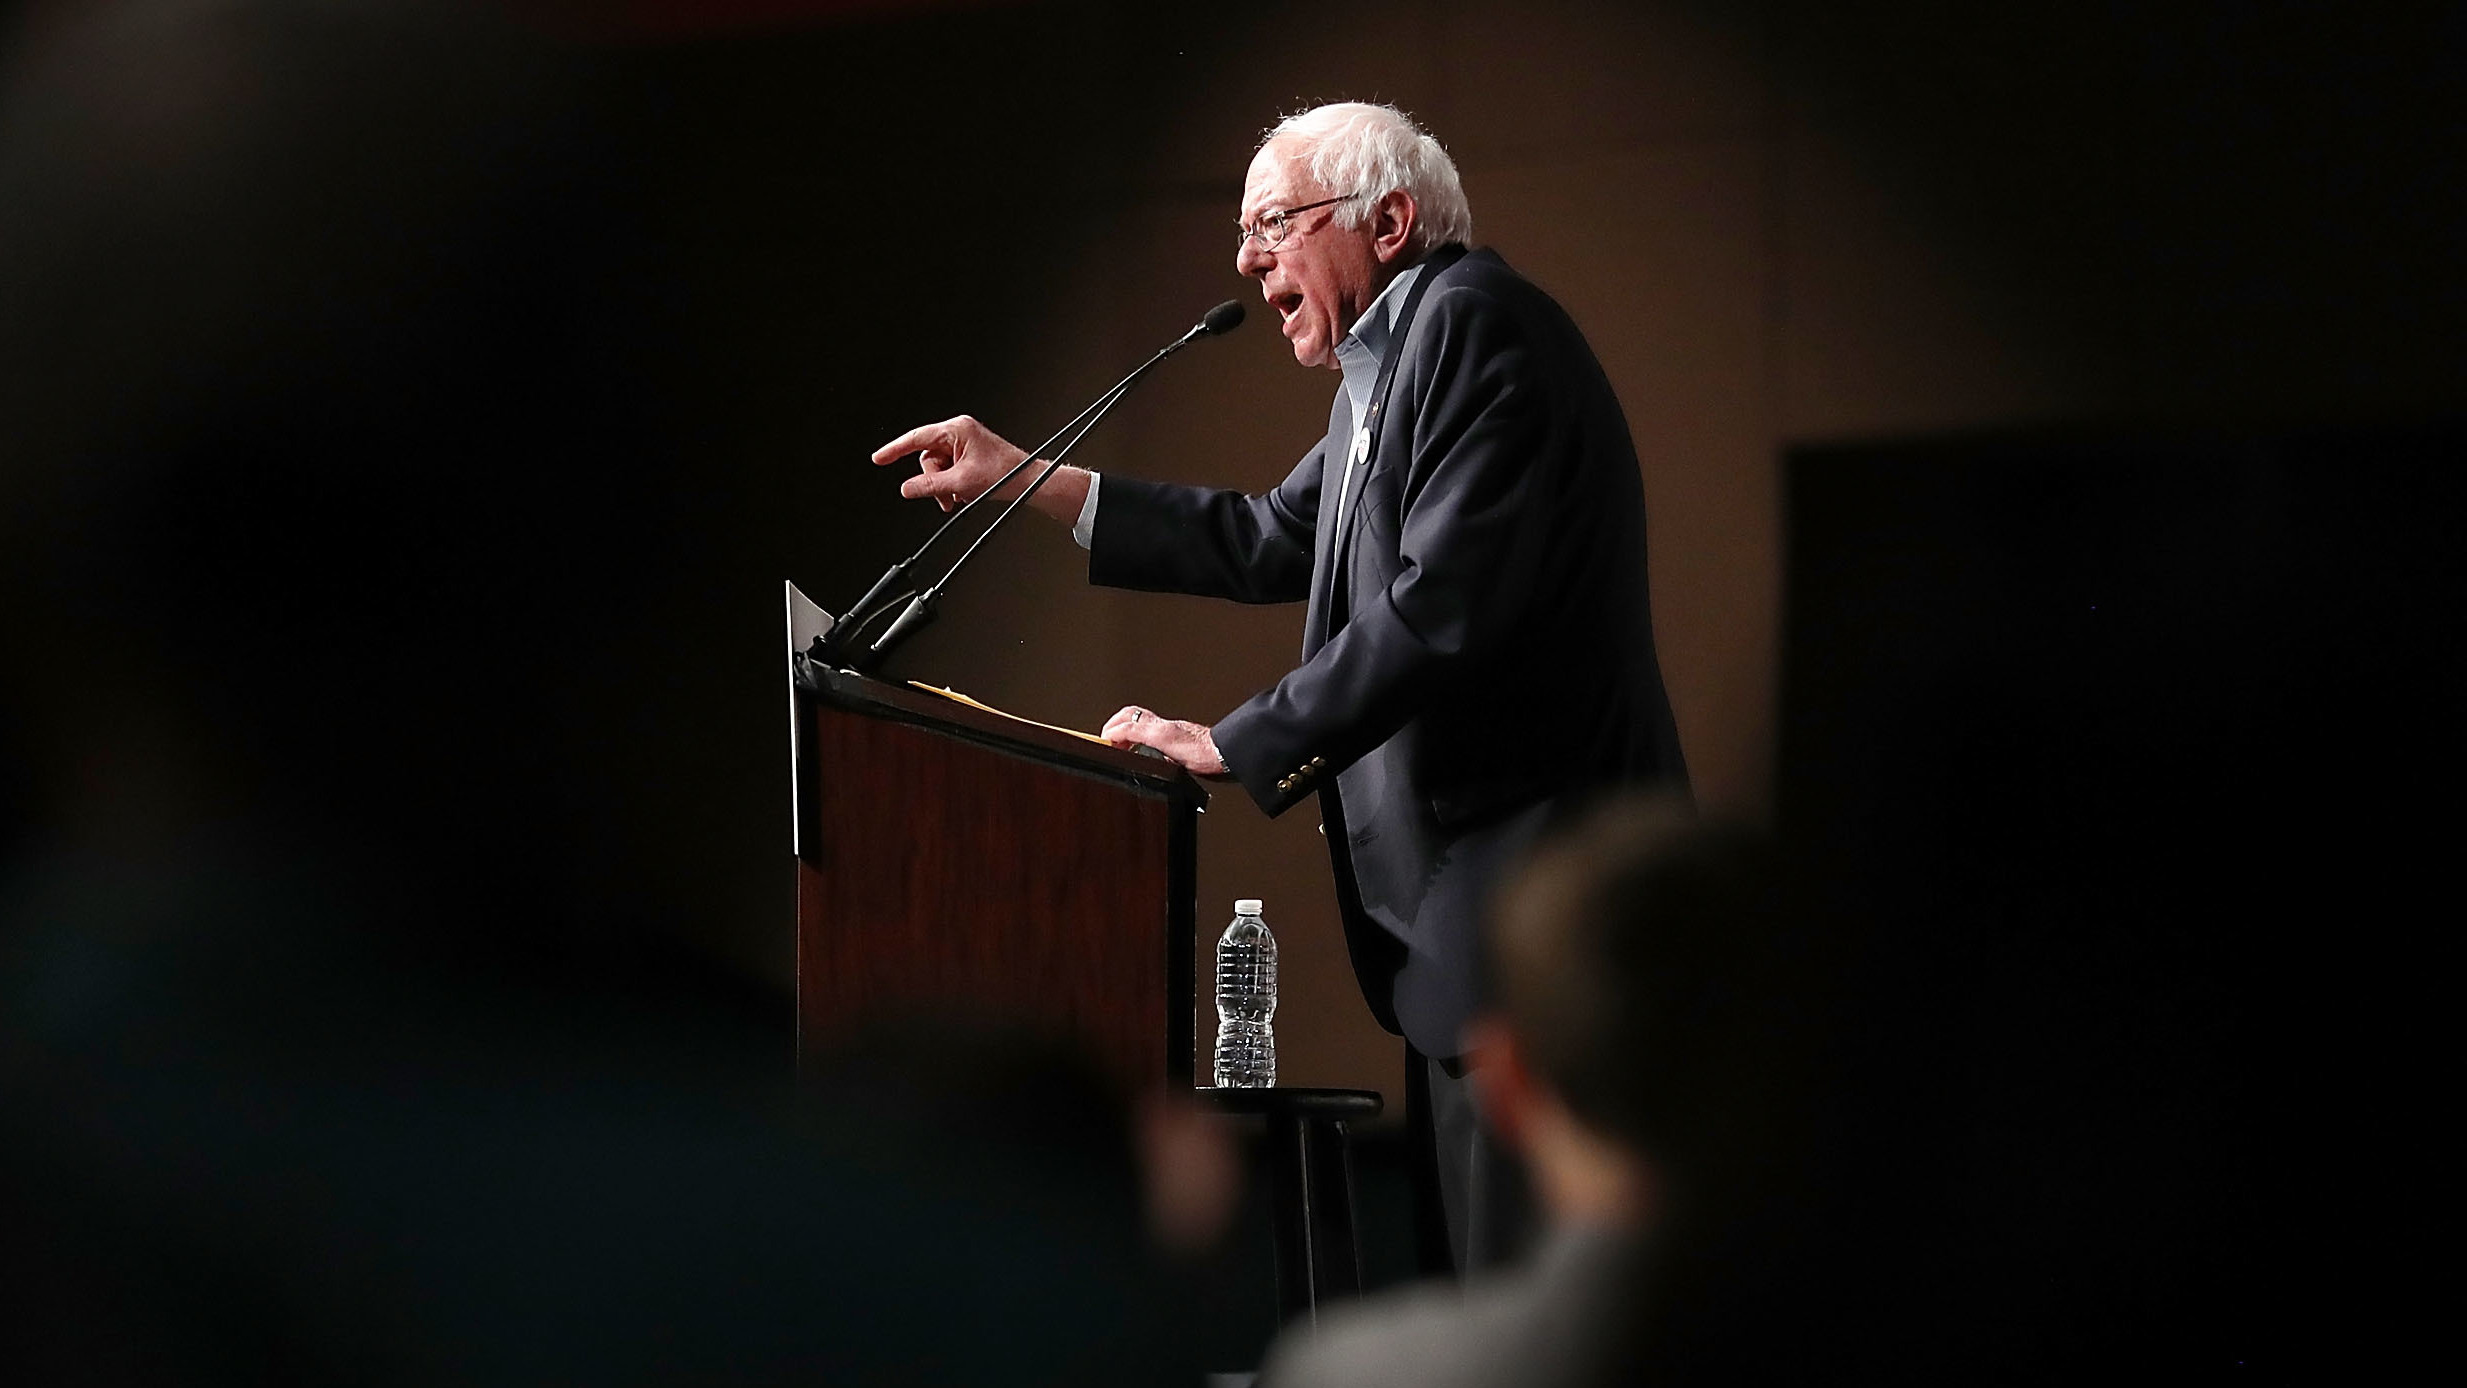 Sen. Bernie Sanders speaks during an event at the the James L. Knight Center on Thursday in Miami as part of a Democratic unity tour. Sanders is getting heat for campaigning with Omaha, Neb., mayoral candidate Heath Mello, who has supported abortion restrictions.